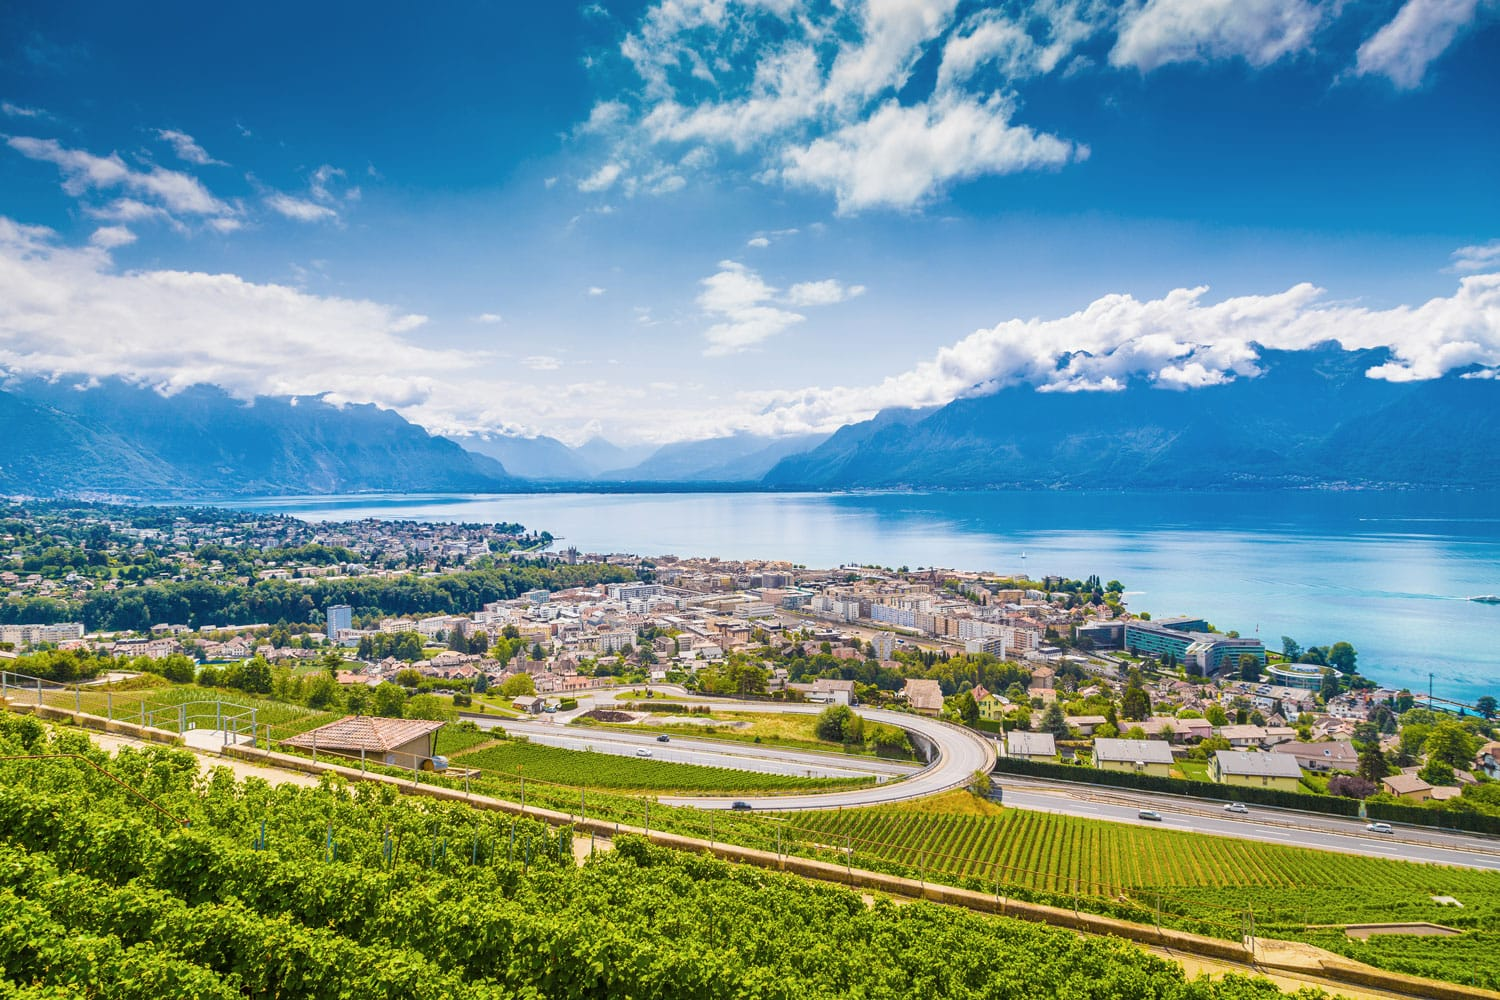 Aerial panoramic view of the city of Vevey at Lake Geneva in Canton of Vaud, Switzerland